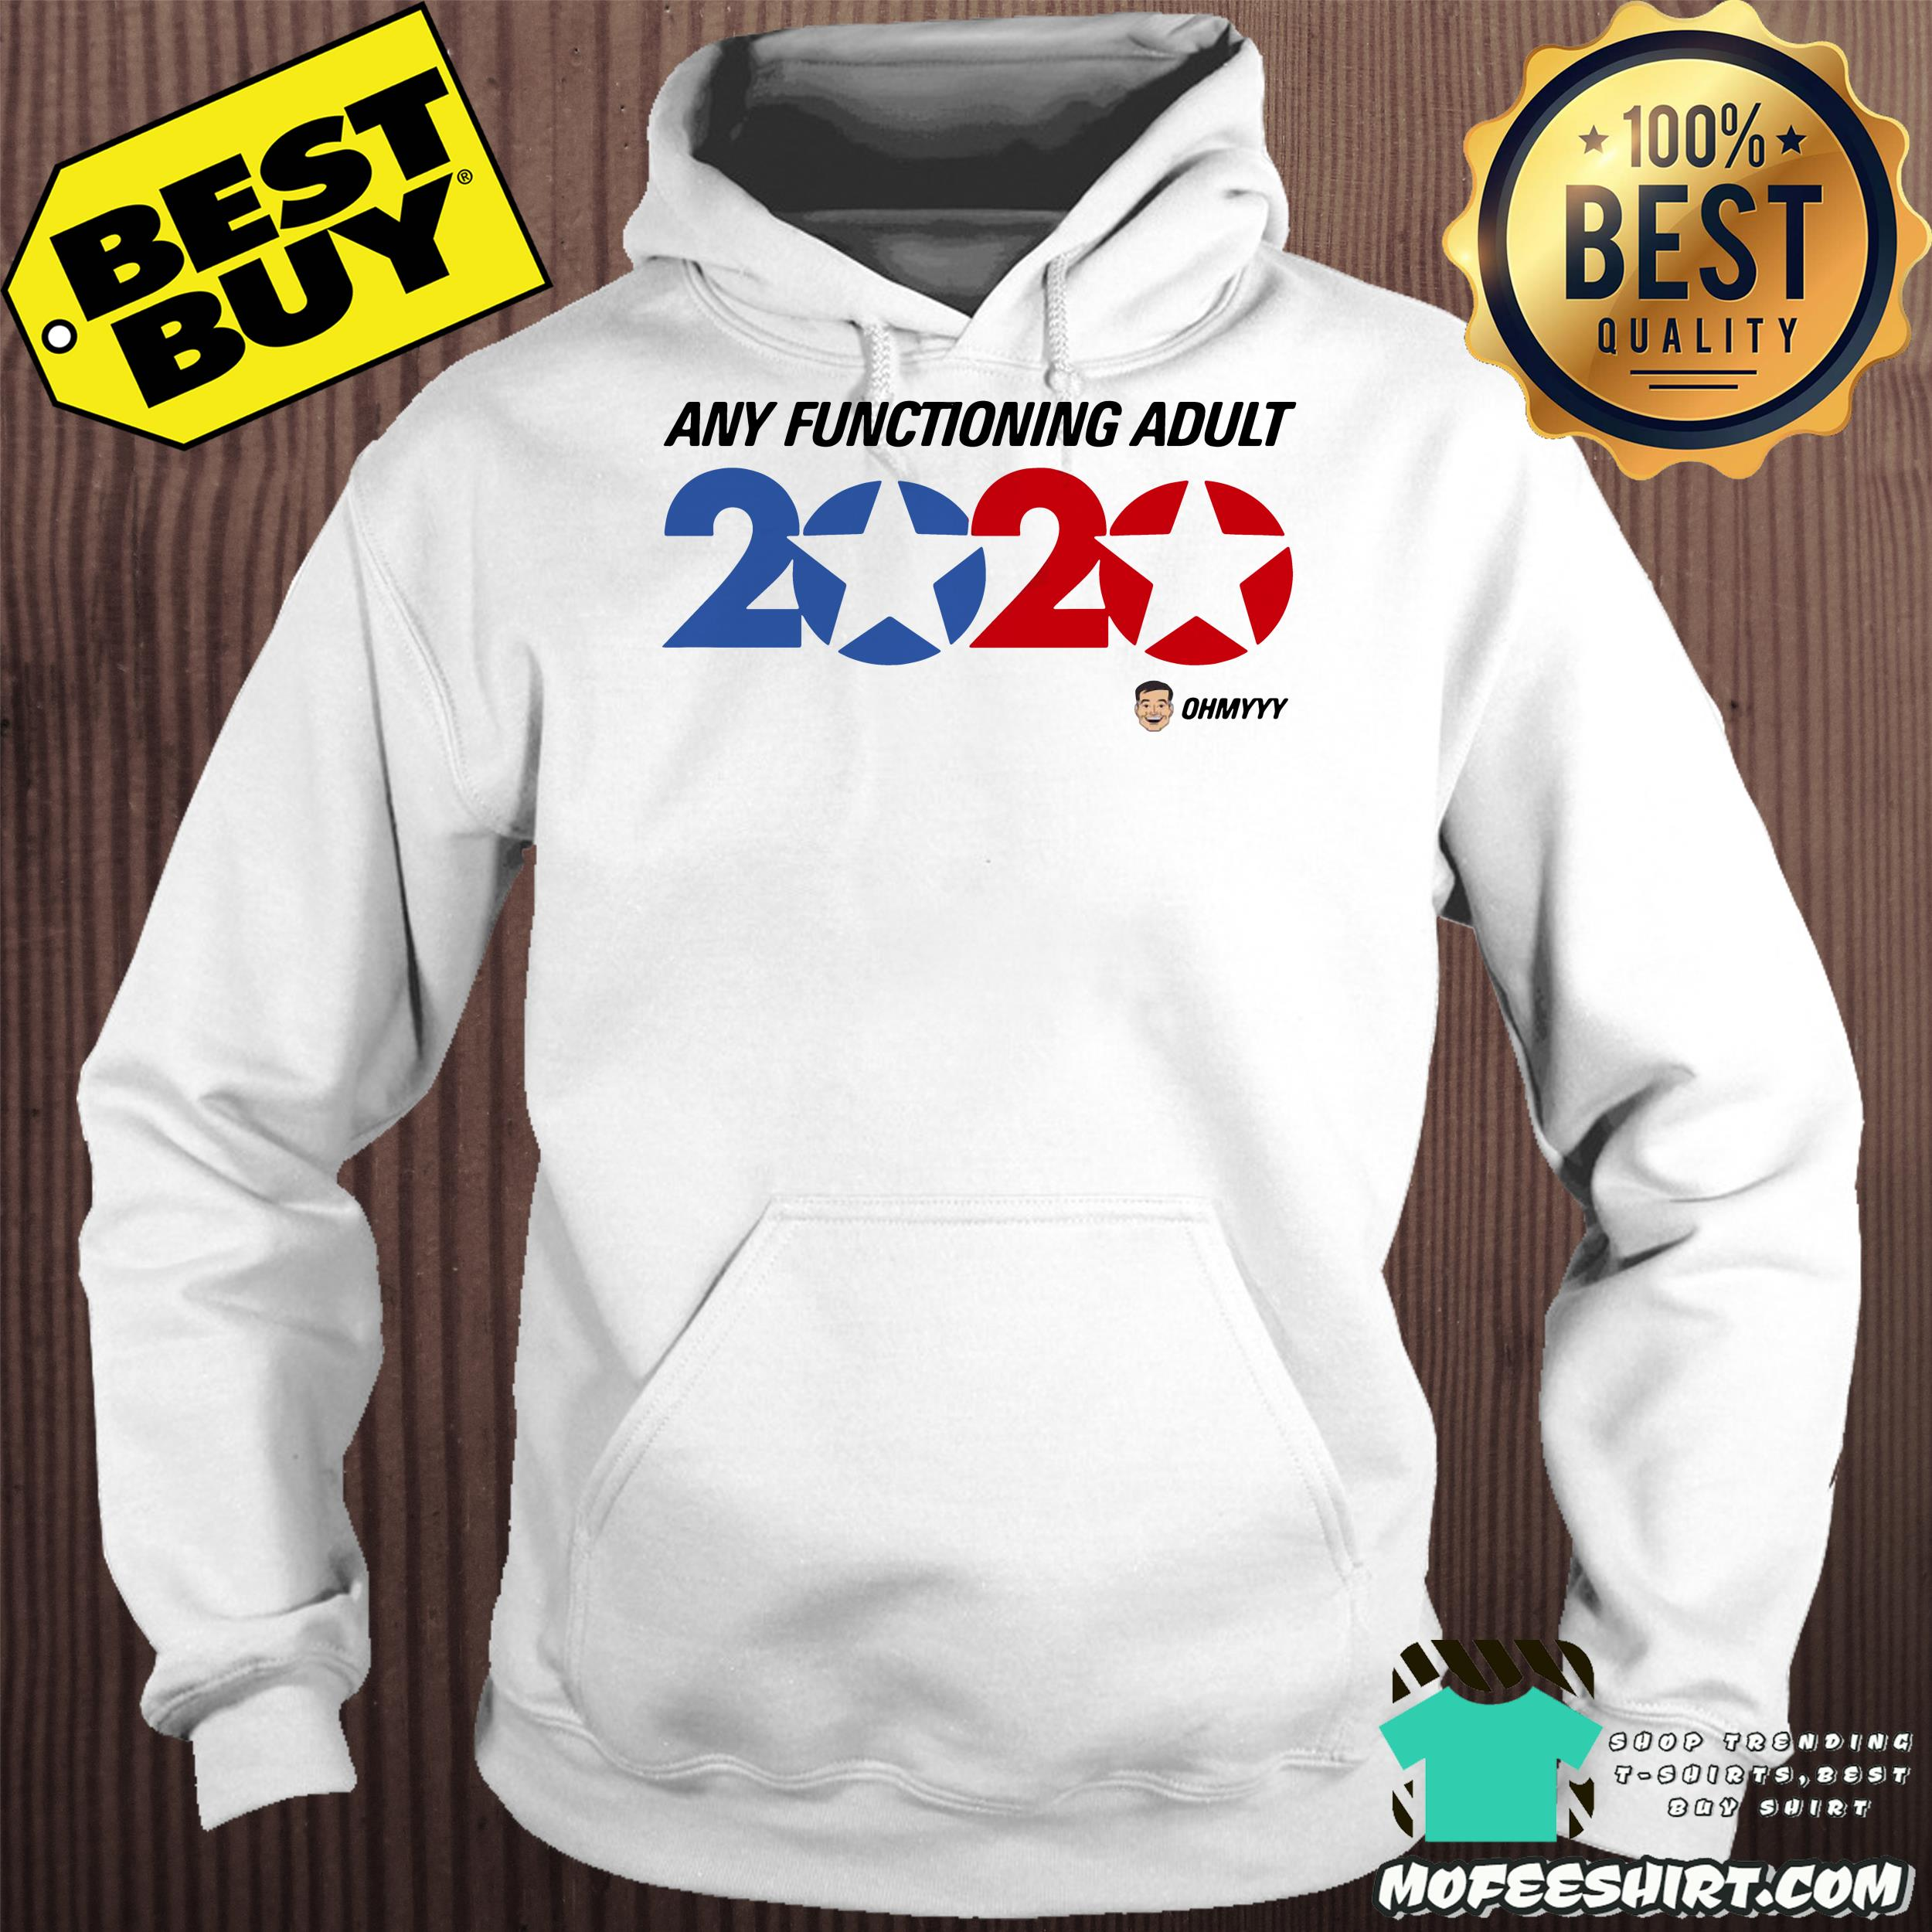 america trump 2020 george takei any functioning adult hoodie - America Trump 2020 George Takei Any functioning adult shirt